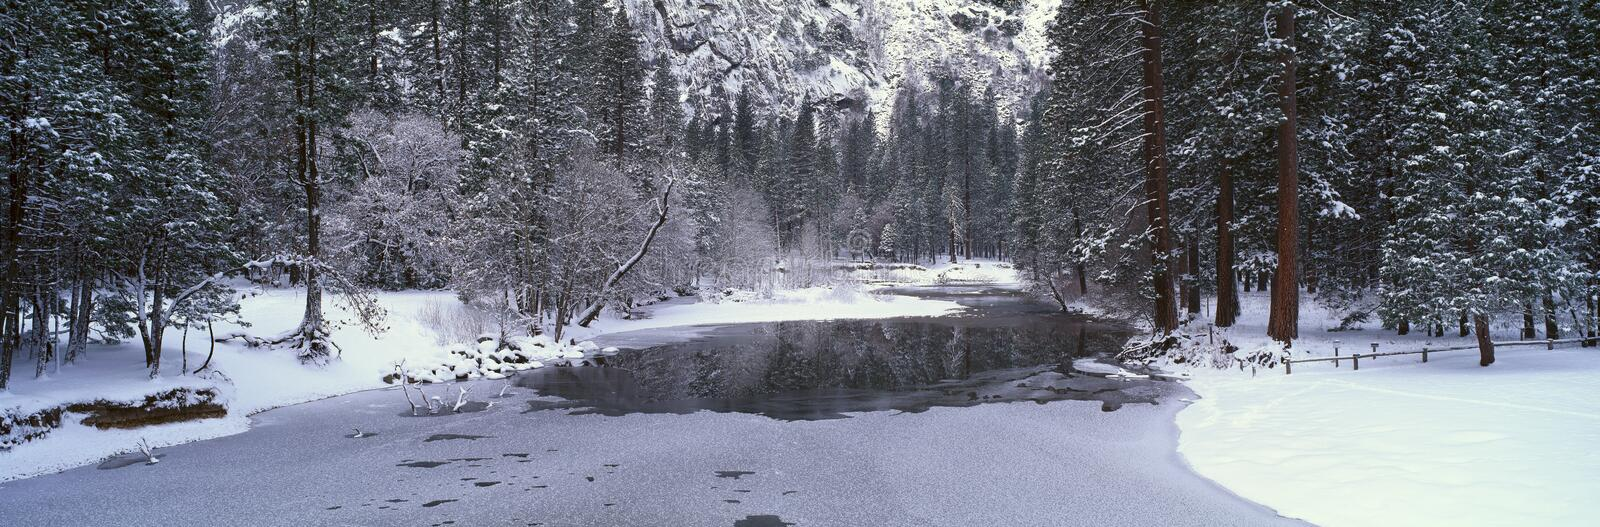 The Merced River In Winter, stock photo